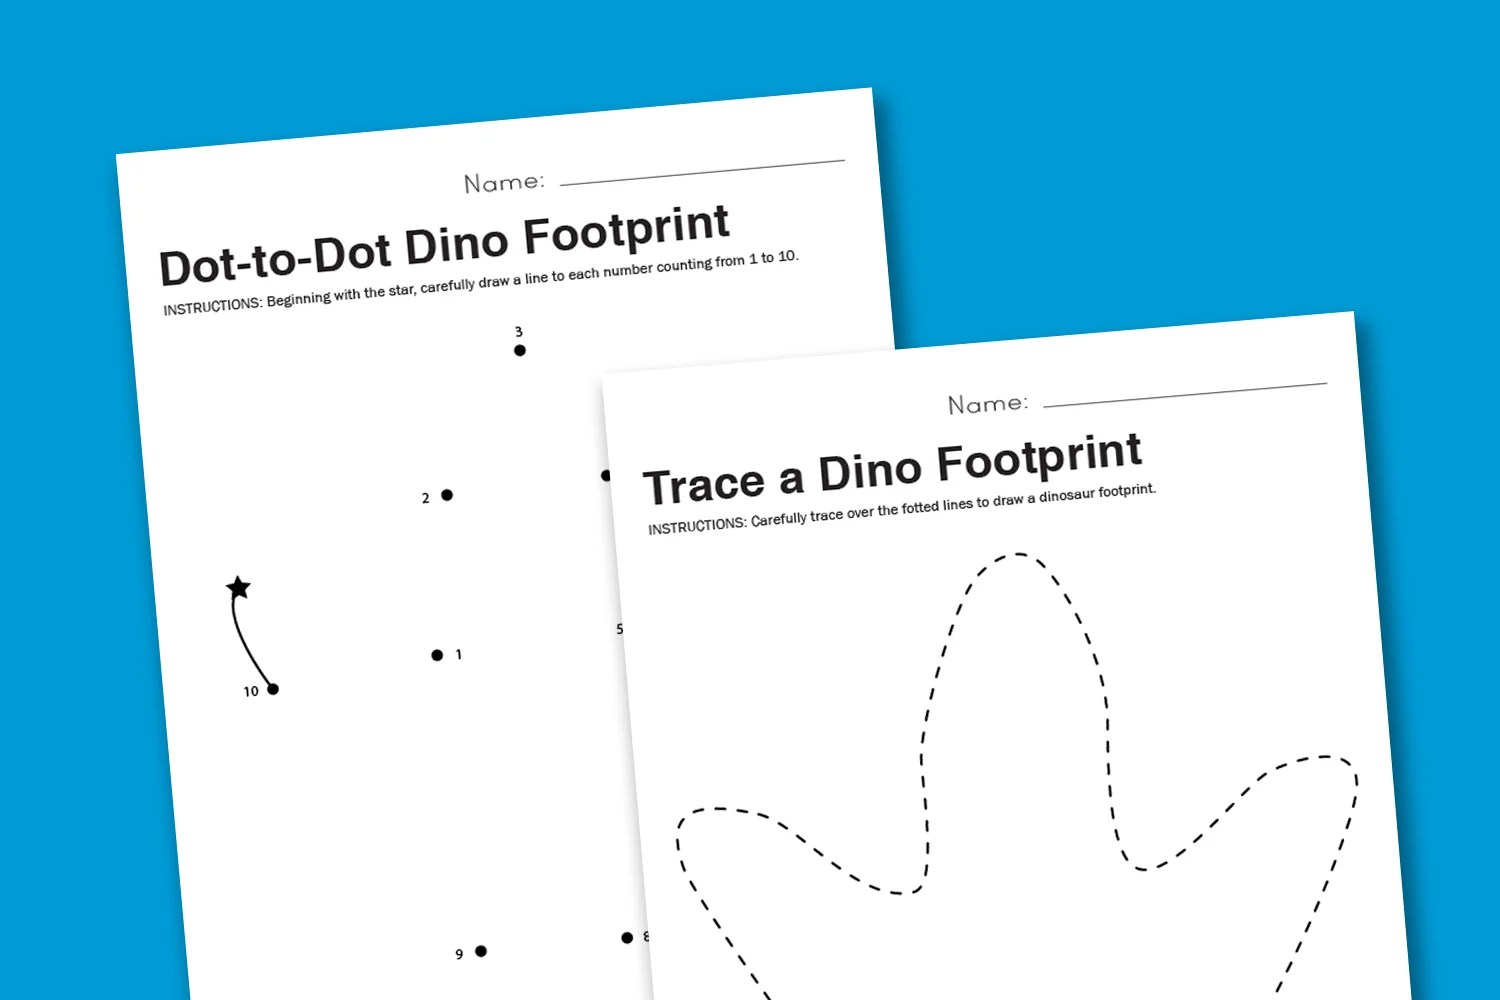 Worksheet Dot To Dot Dinosaur